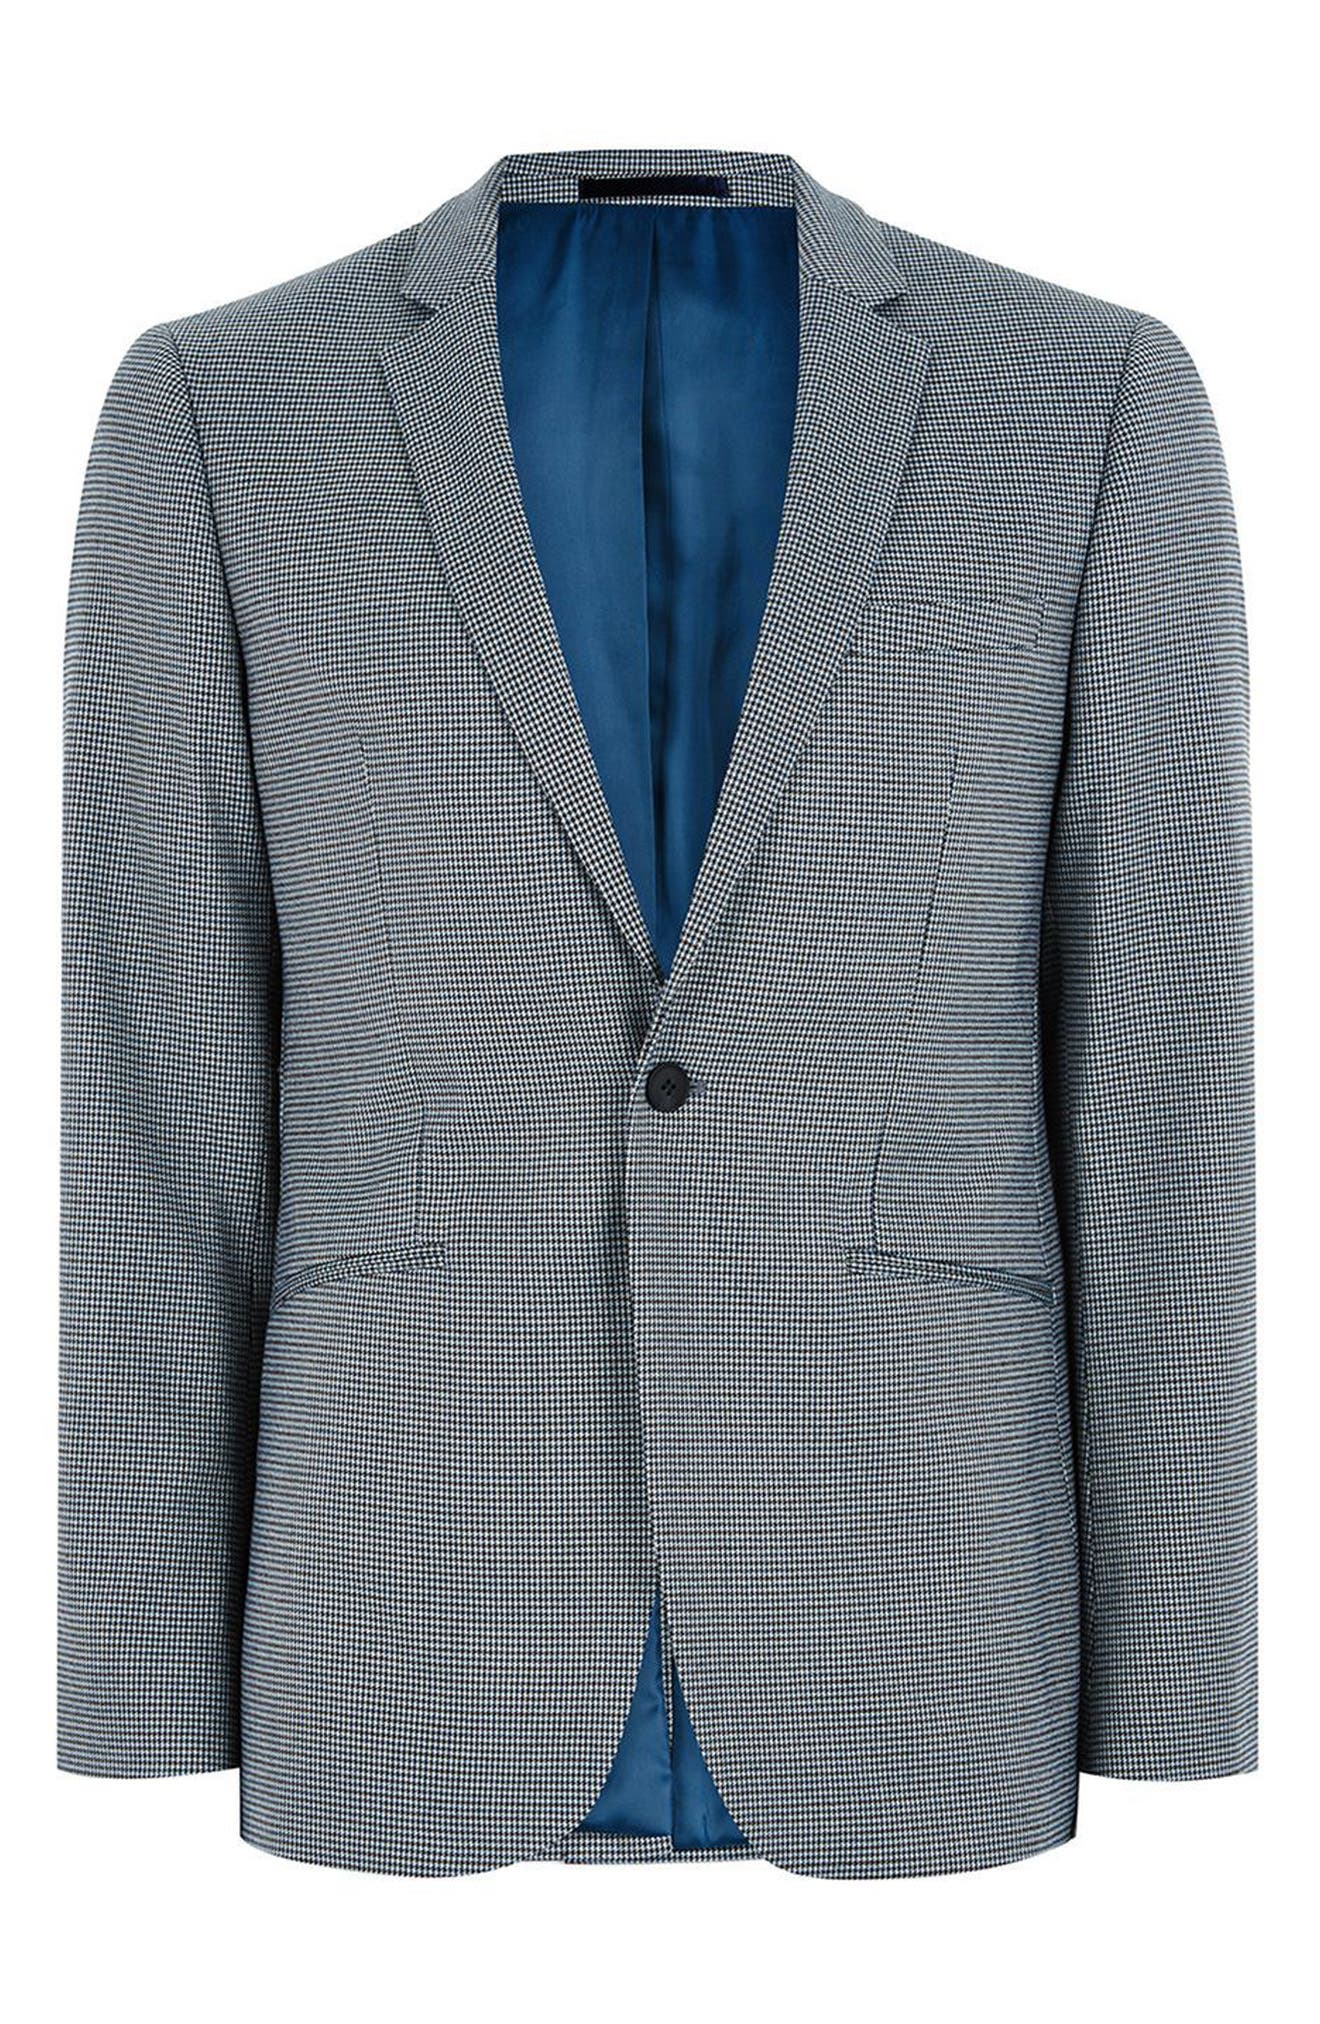 Alternate Image 6  - Topman Skinny Fit Houndstooth Suit Jacket